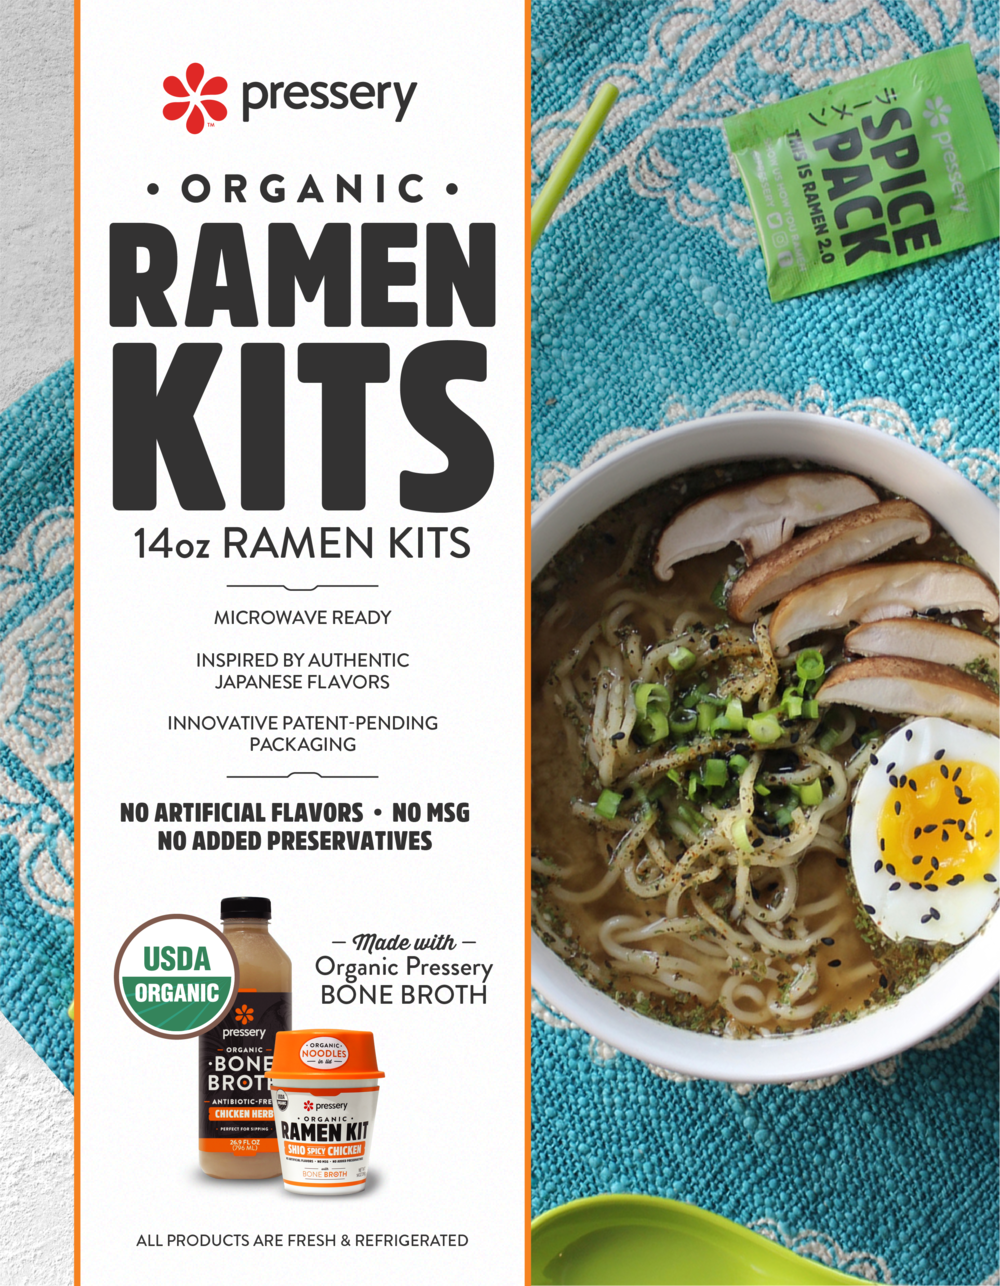 Pressery_Ramen_Kit_Tear_Sheet-01.jpg